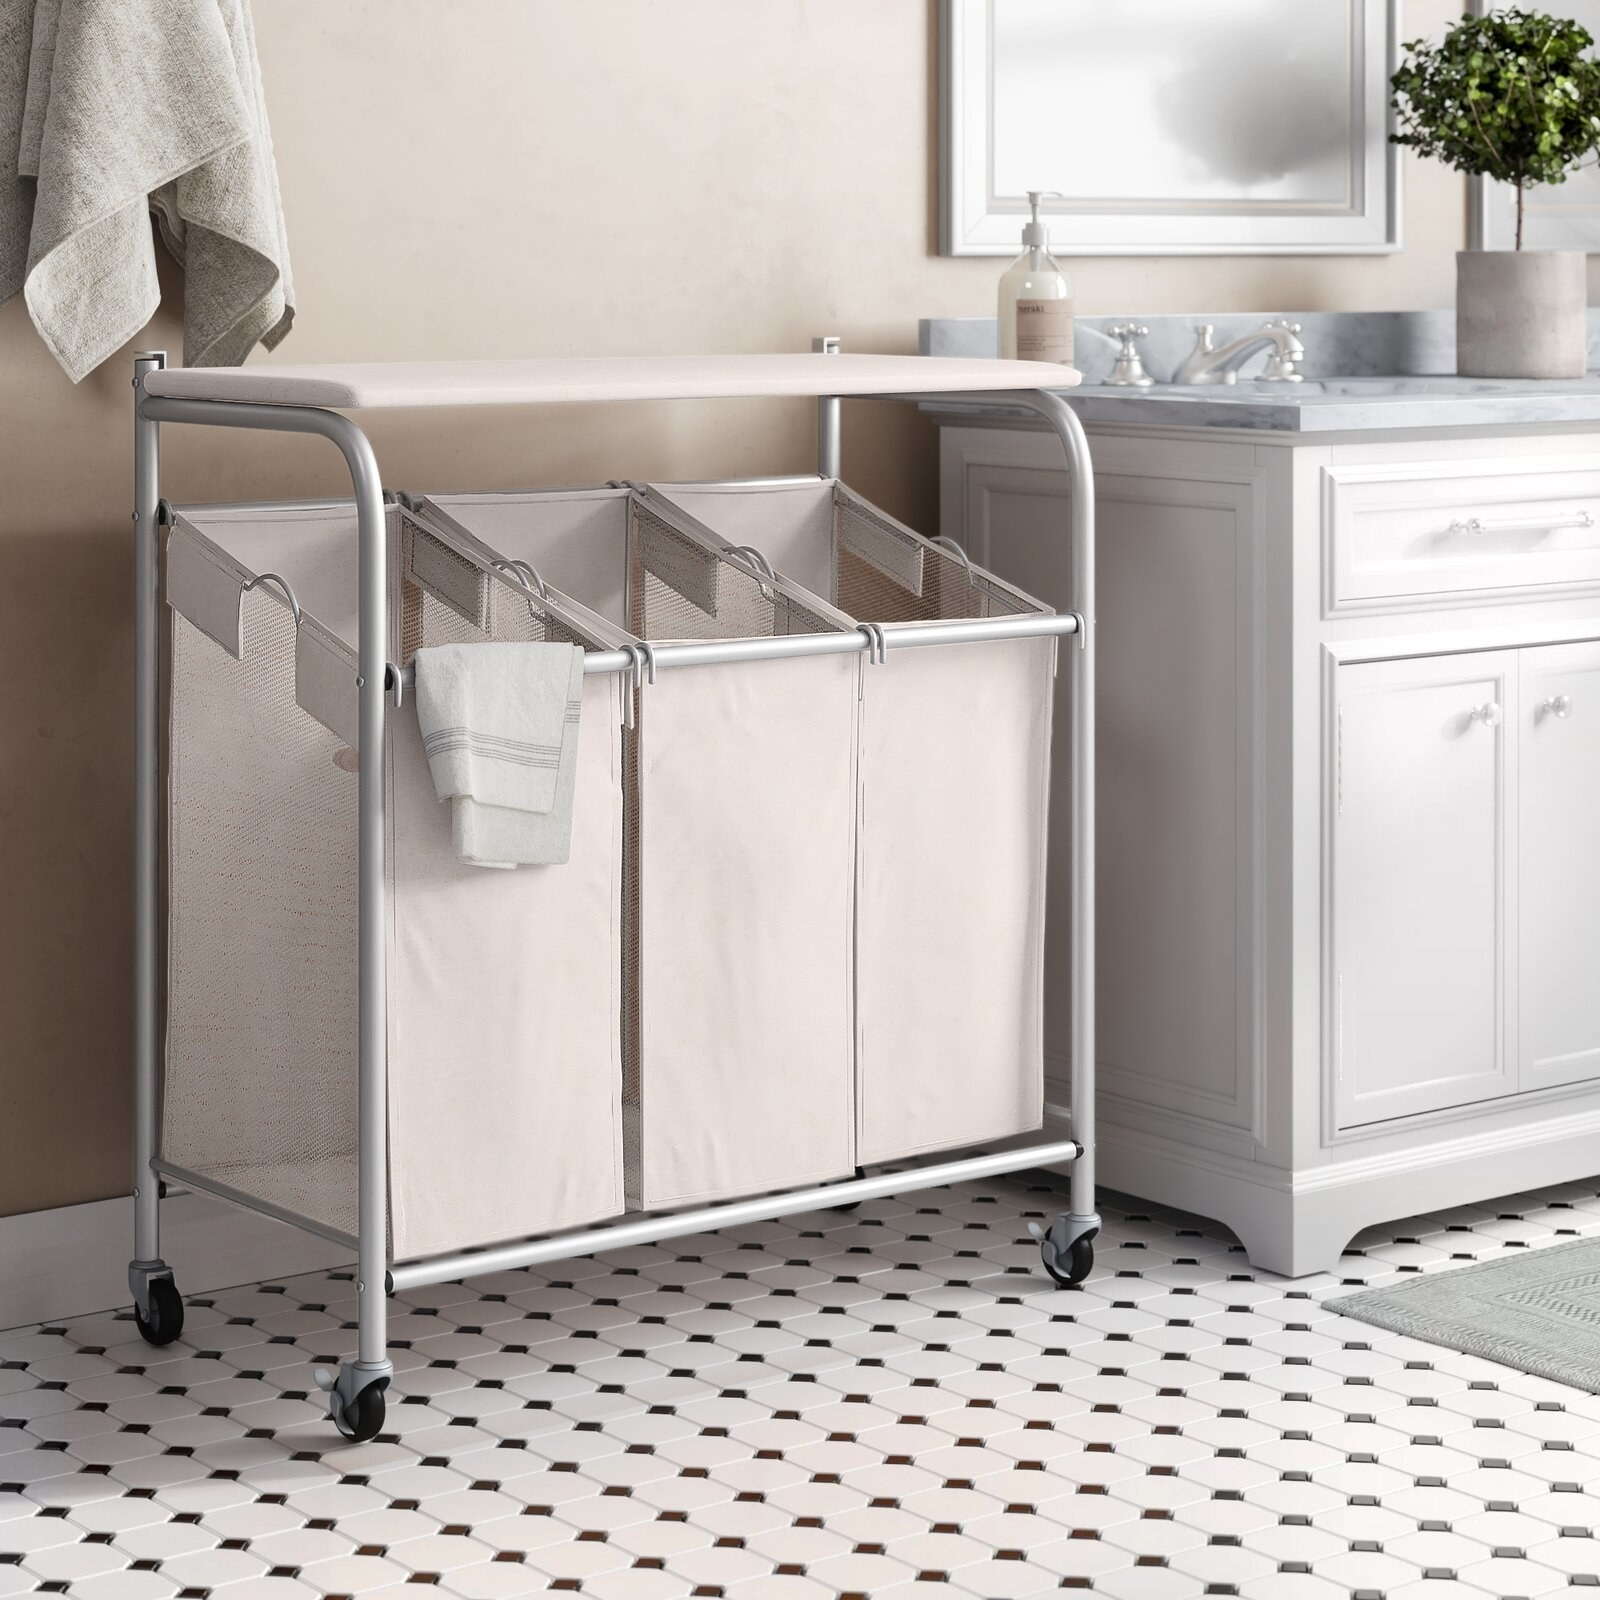 A three-bag laundry hamper, with wheels, and an iron-board top that can store both clean and dirty clothes in your laundry room